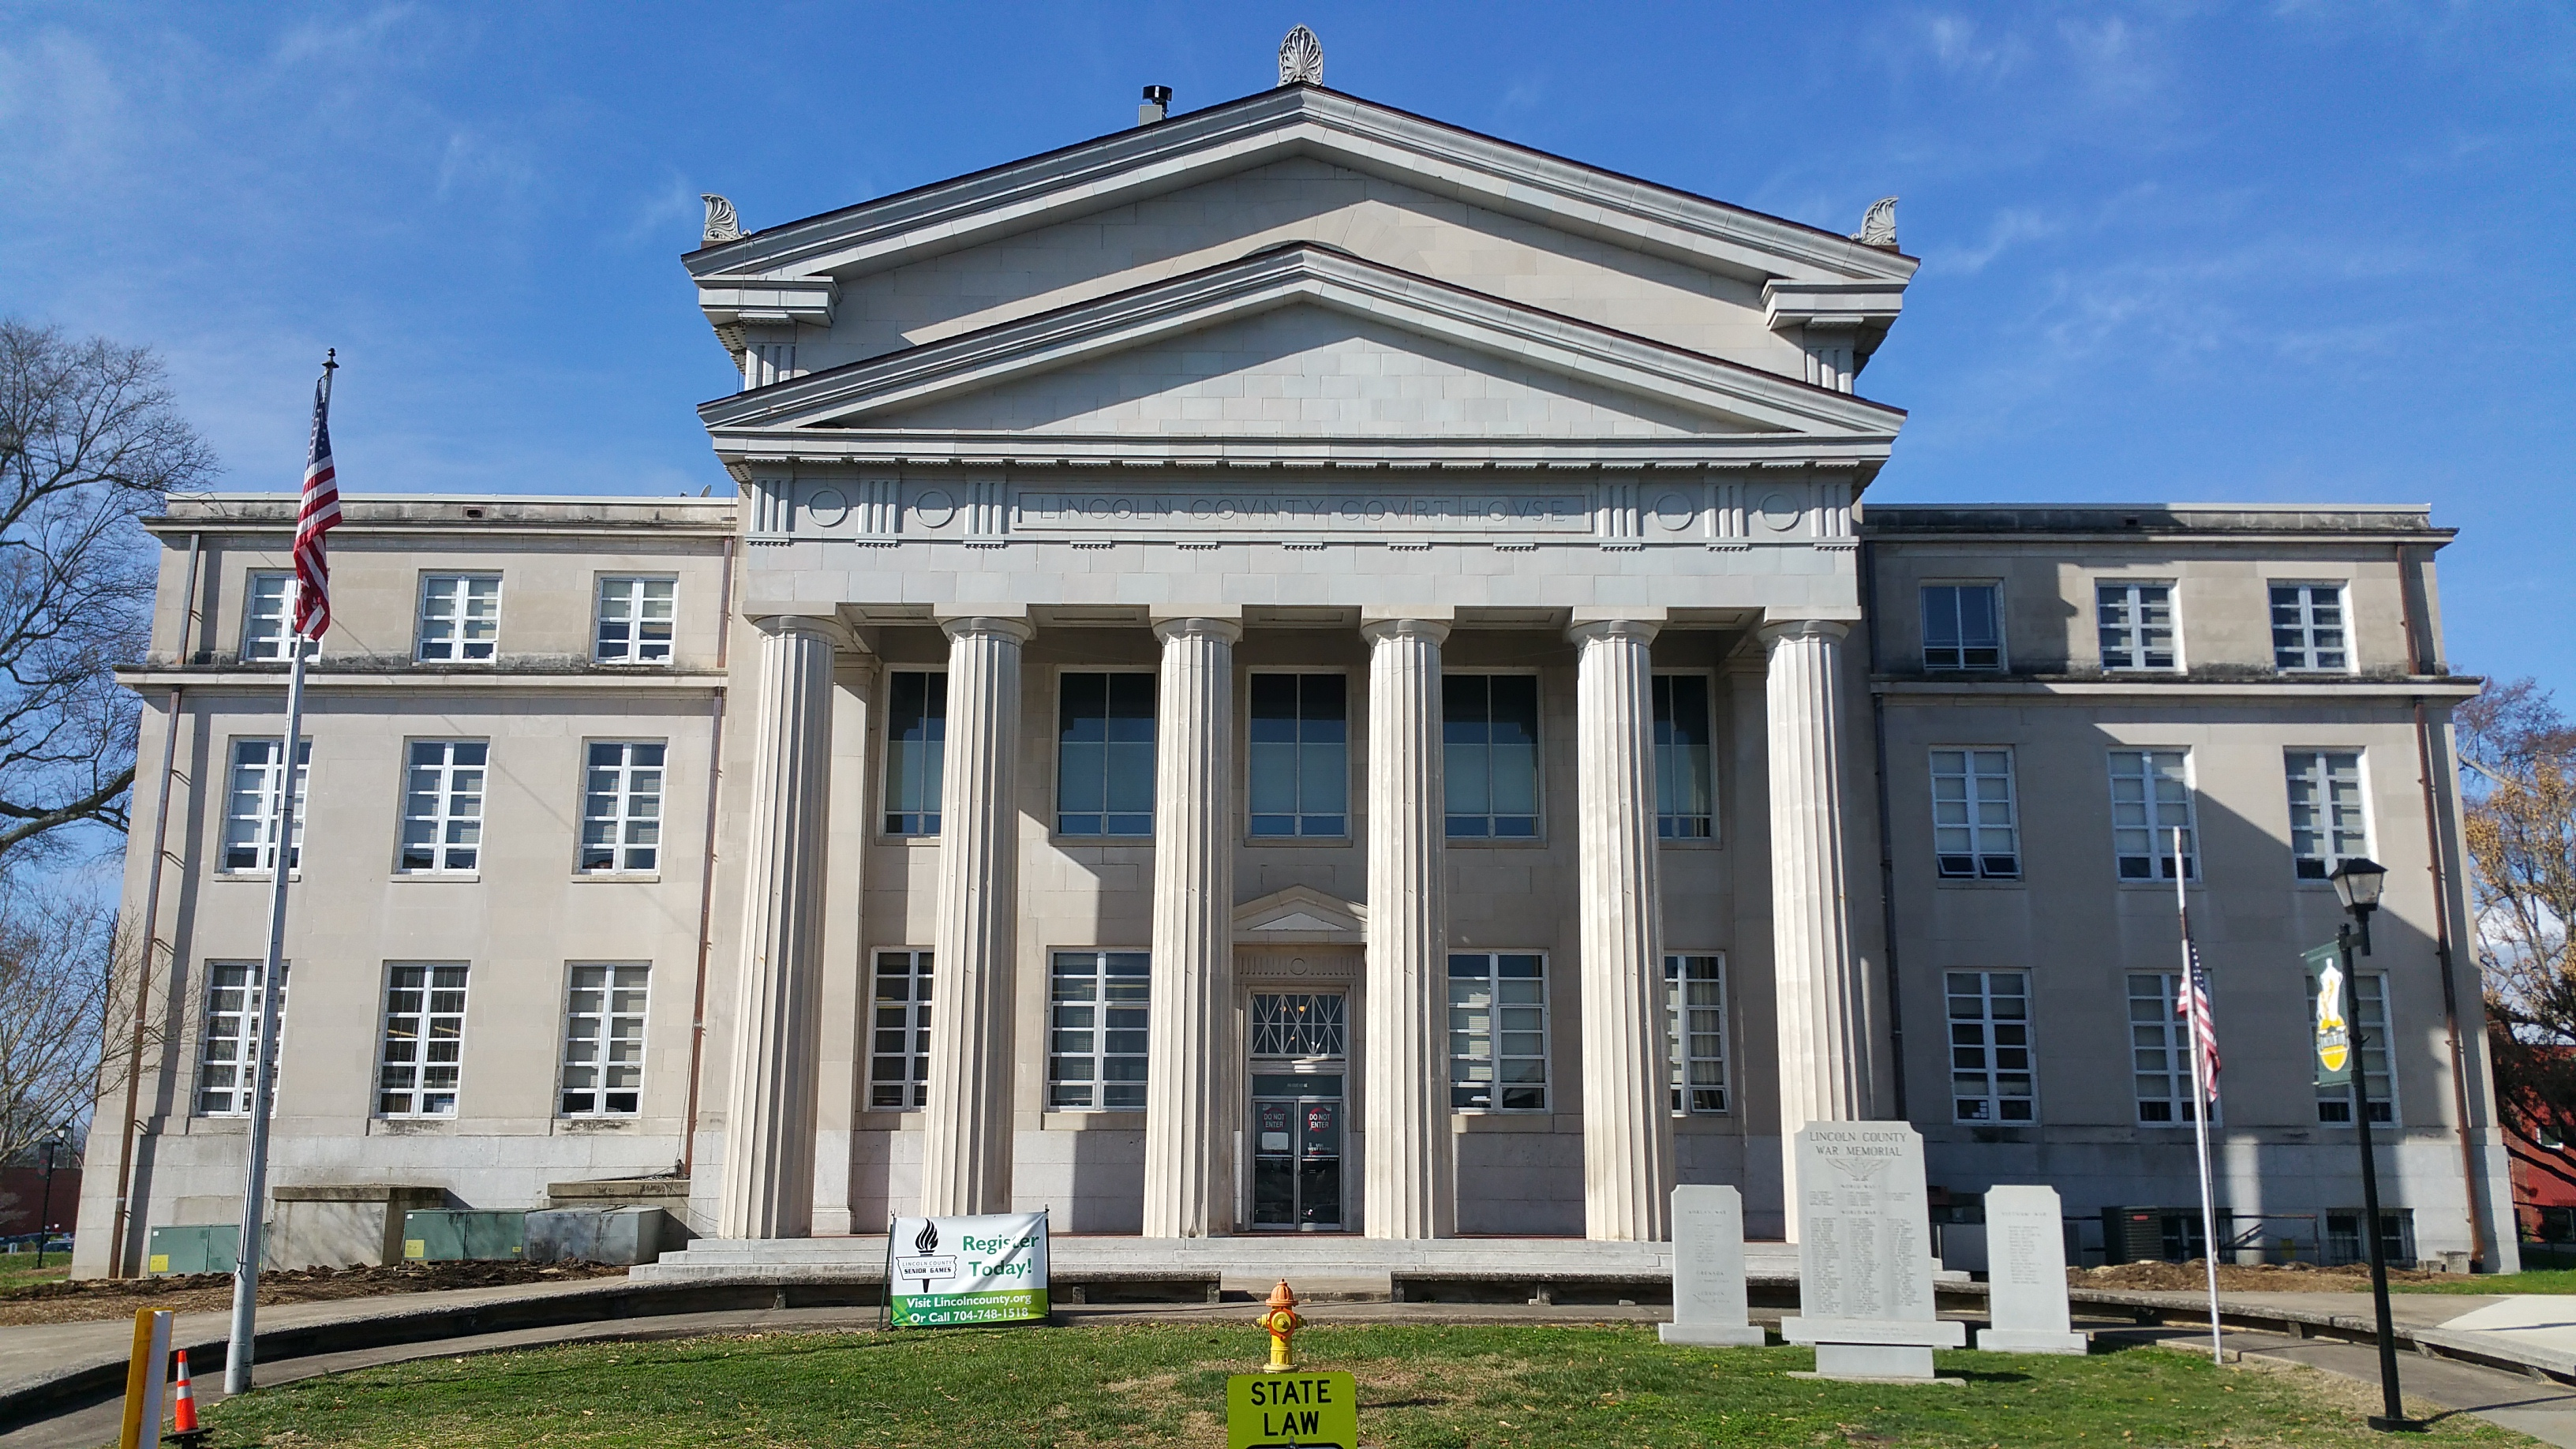 The Lincoln County Court House has remained an iconic symbol of downtown Lincolnton for nearly 100 years.